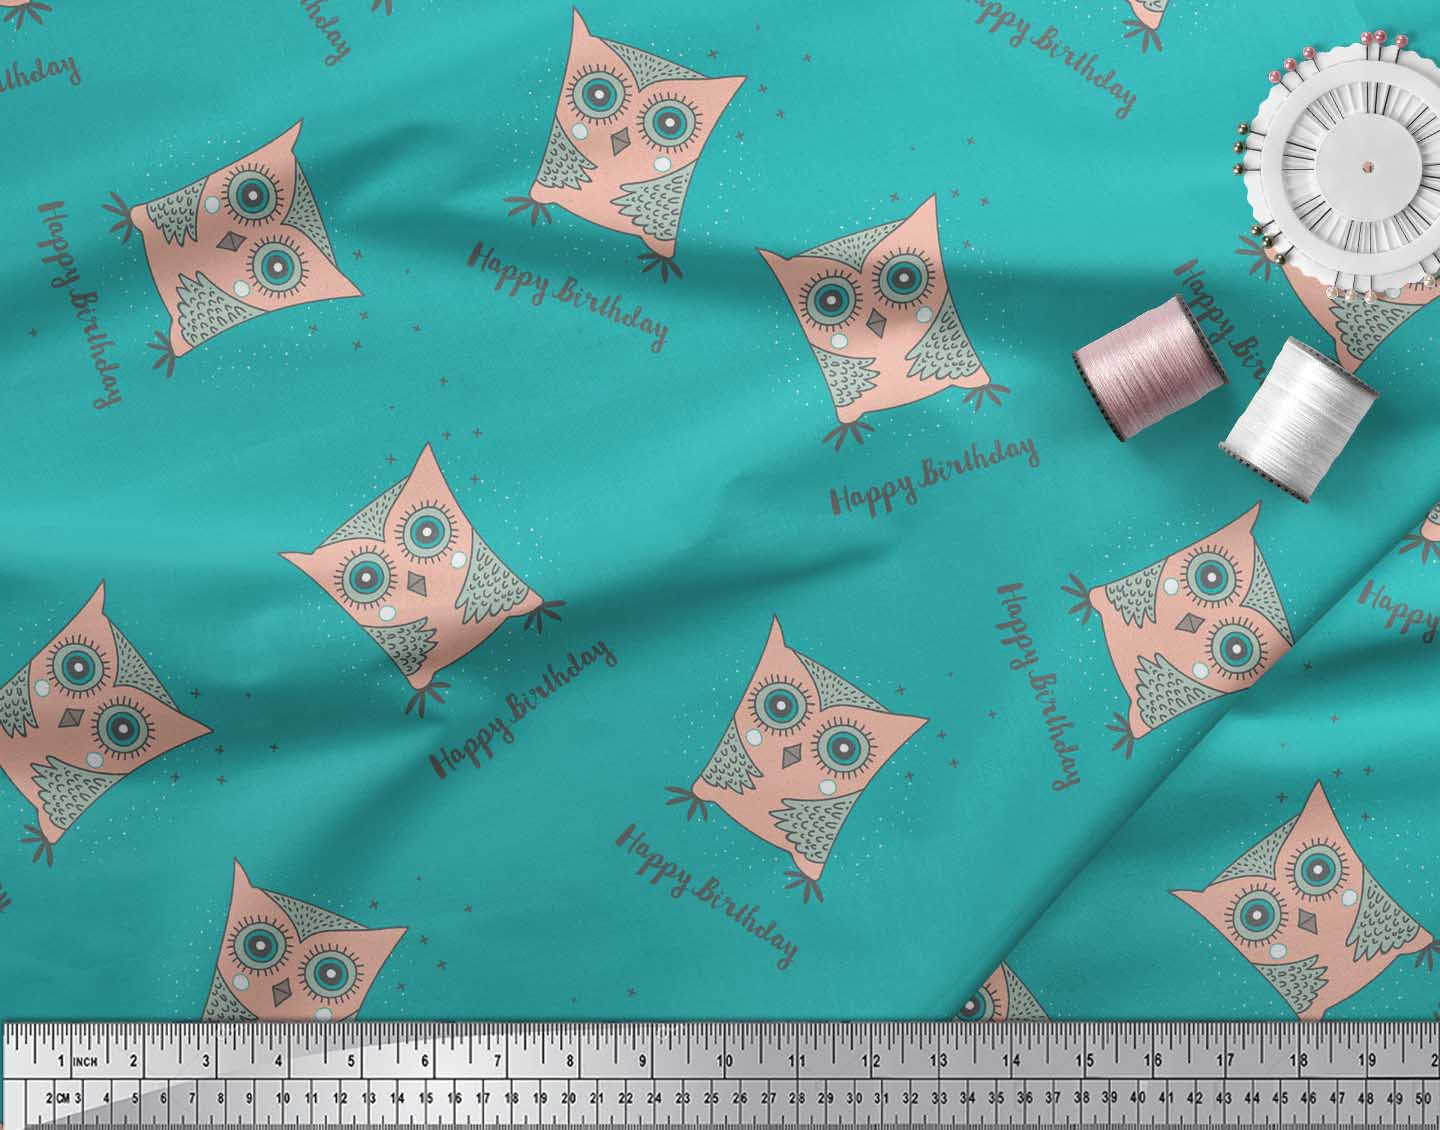 Soimoi-Green-Cotton-Poplin-Fabric-Text-amp-Owl-Cartoon-Fabric-Prints-Dim thumbnail 4